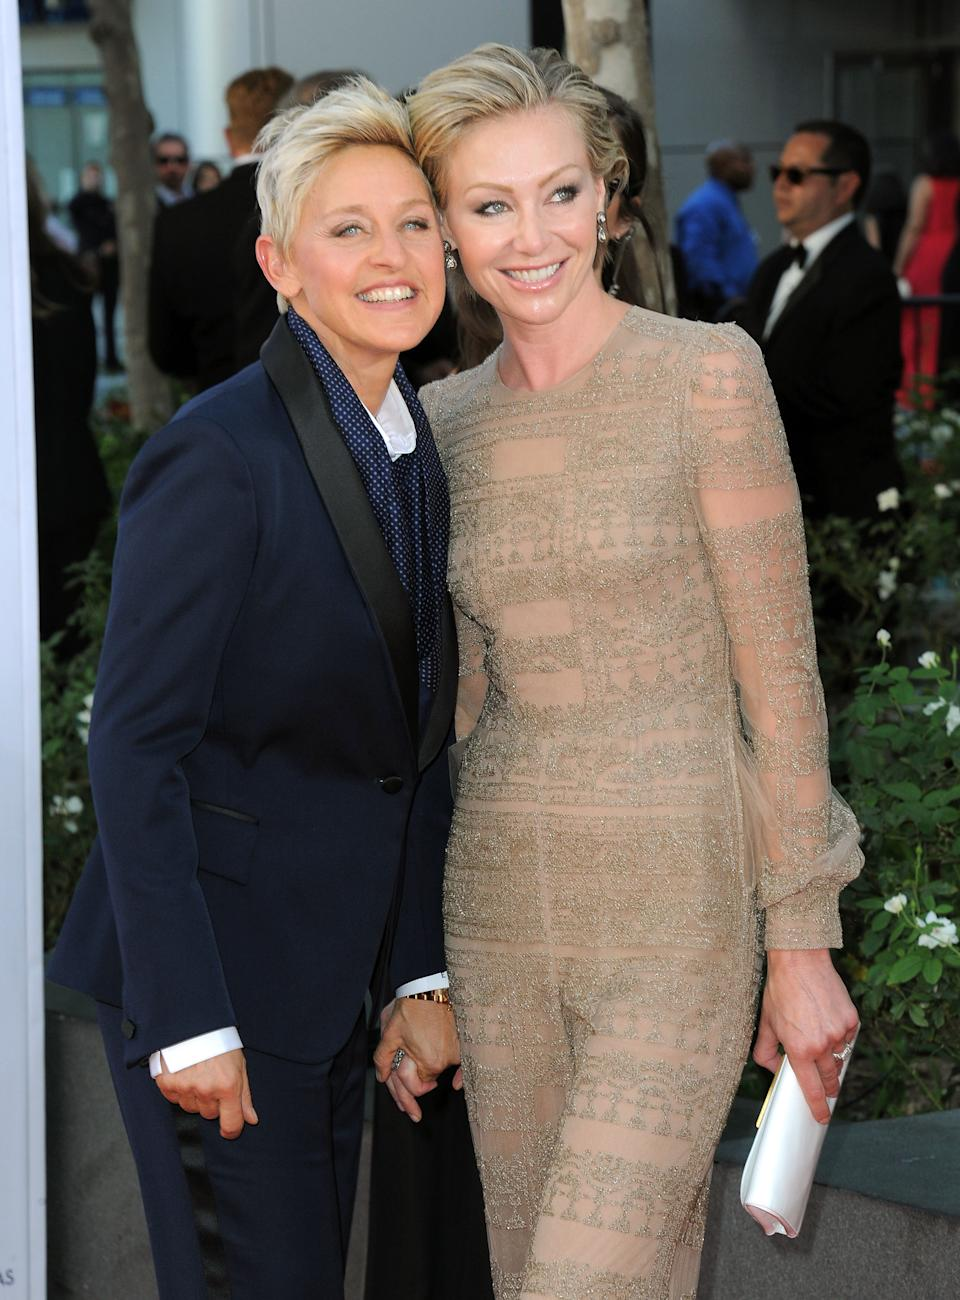 Actresses Ellen DeGeneres, left and Portia de Rossi arrives at the 64th Primetime Emmy Awards at the Nokia Theatre on Sunday, Sept. 23, 2012, in Los Angeles.  (Photo by Jordan Strauss/Invision/AP)